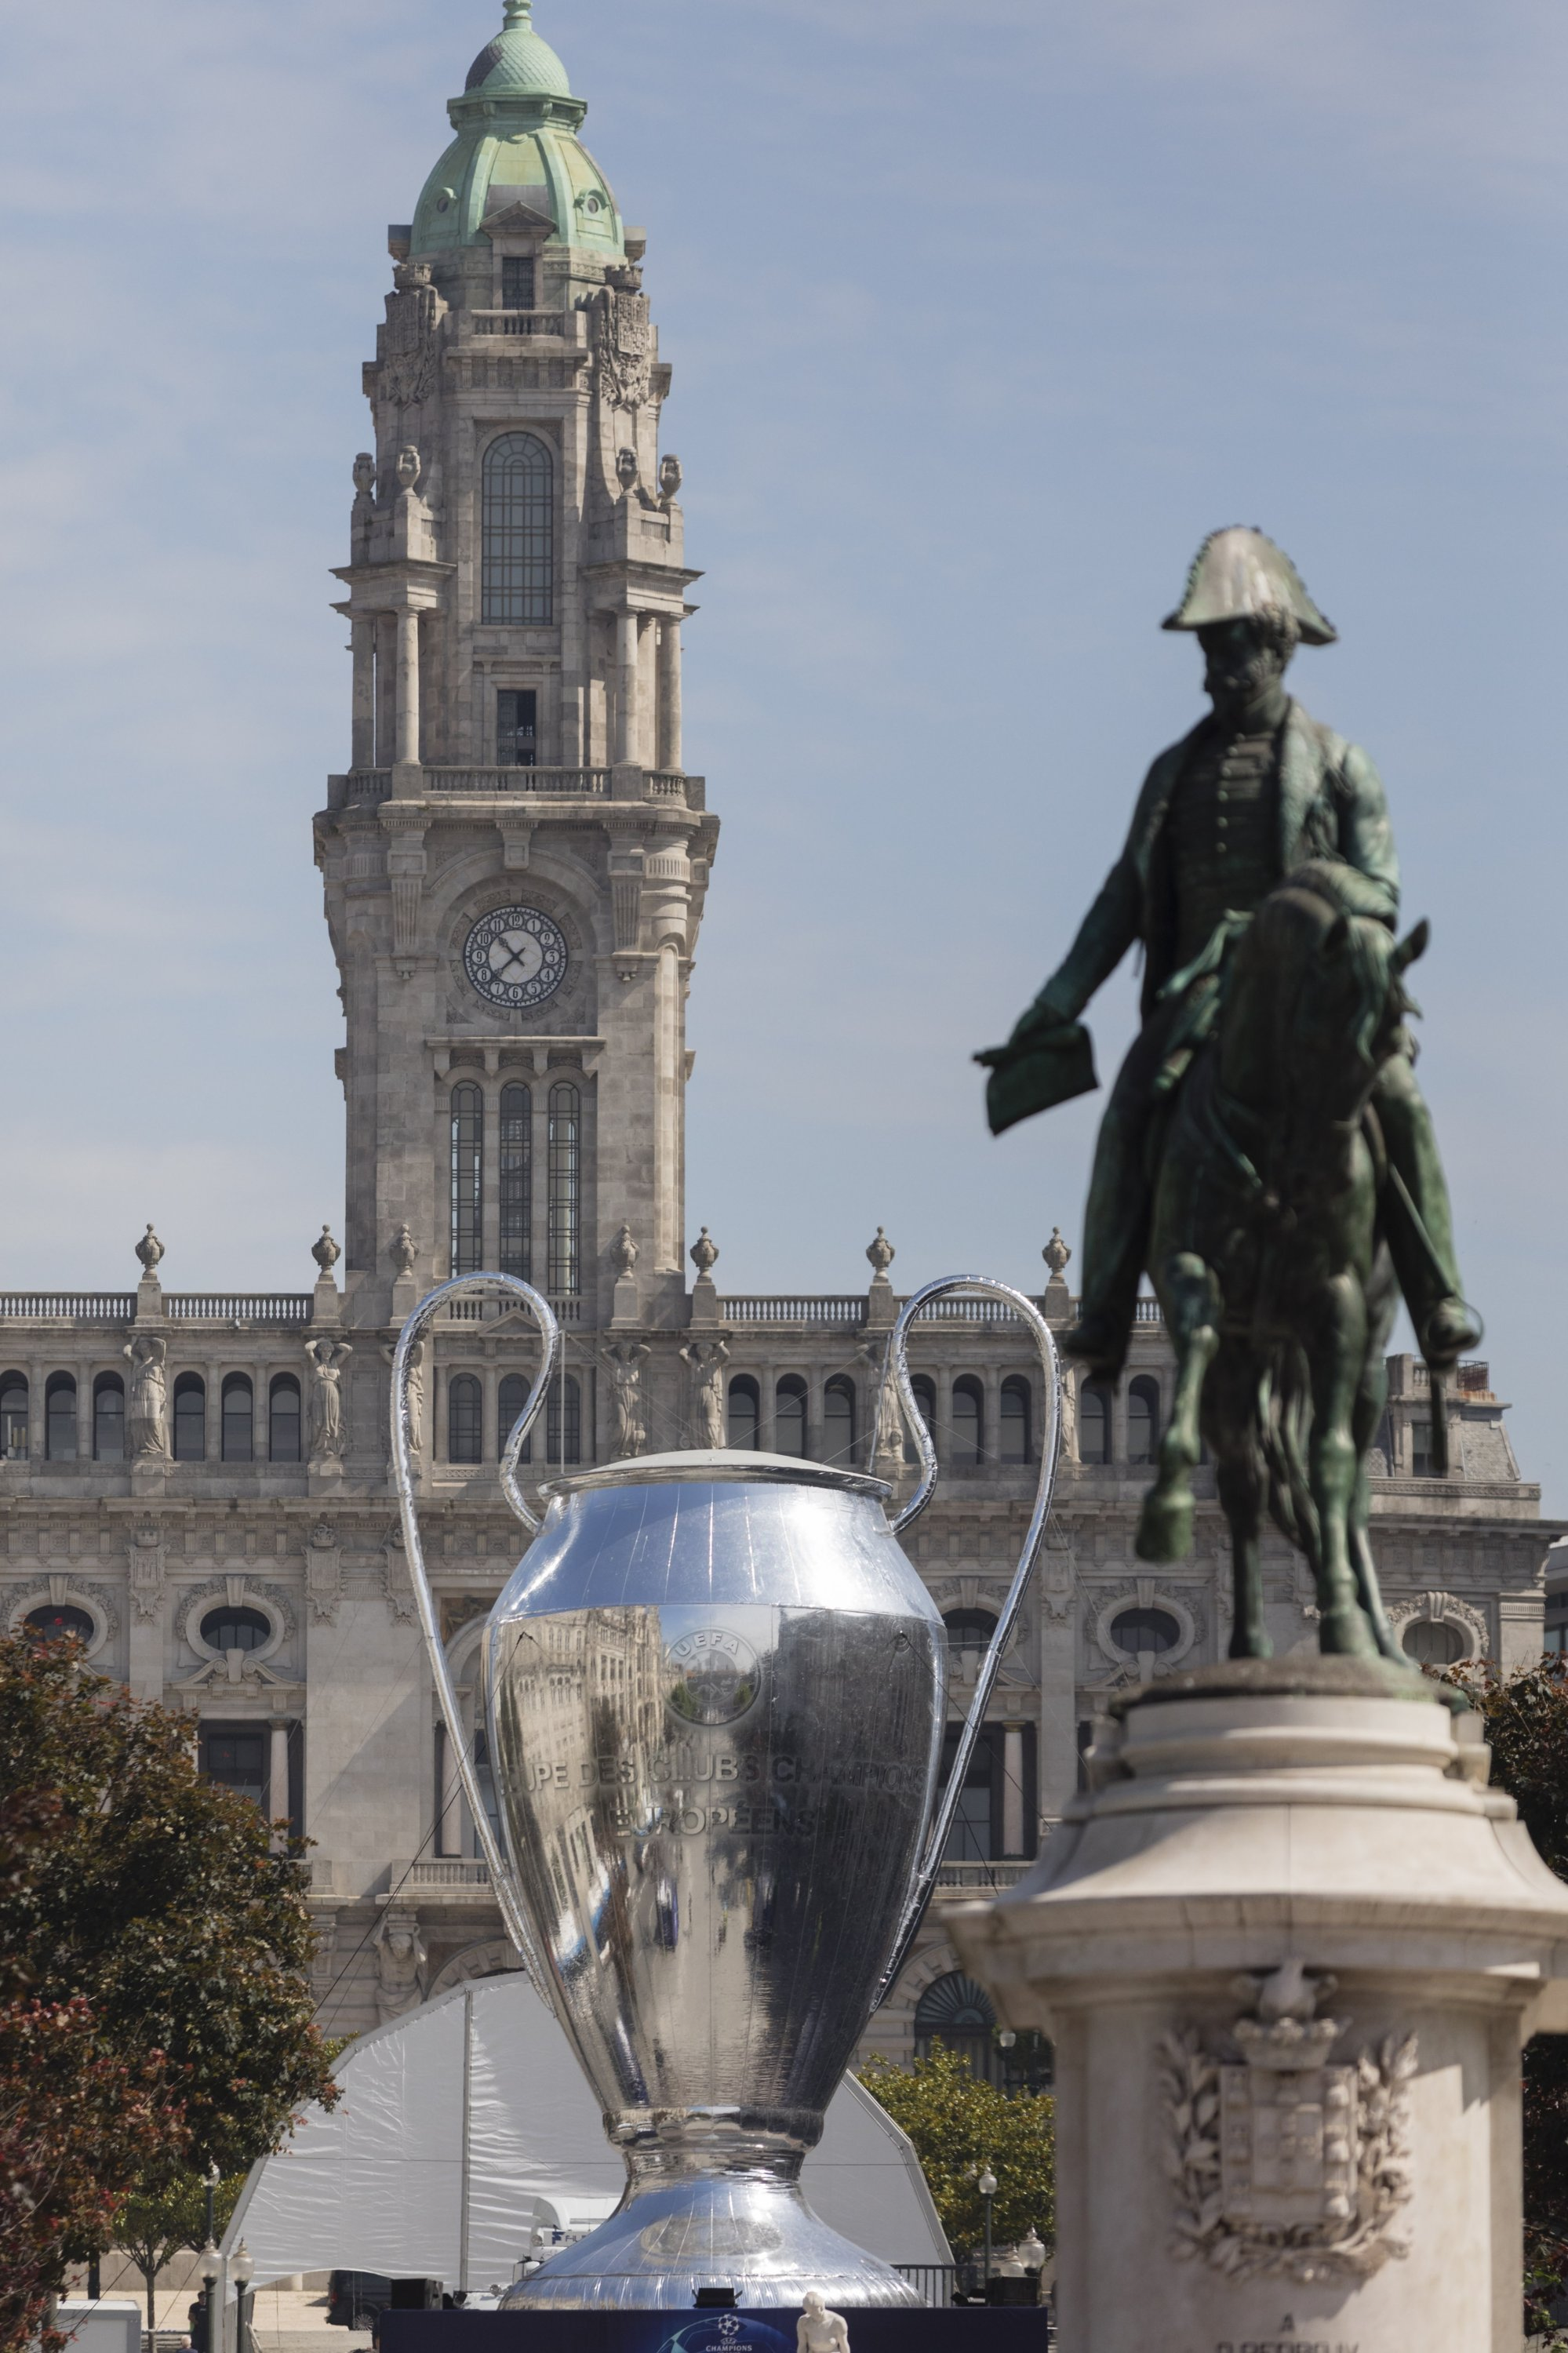 A giant inflatable replica of the UEFA Champions League trophy is placed at Aliados Avenue in Porto, Portugal, May 27, 2021. (EPA Photo)